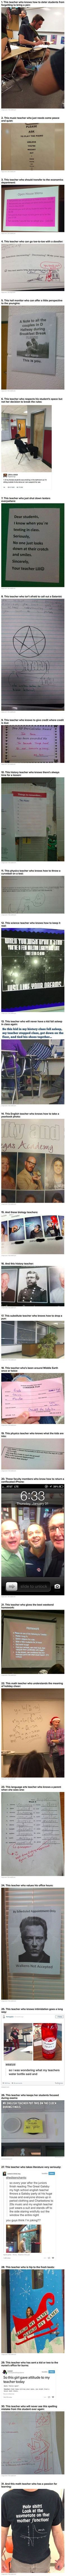 Here are some funny and nerdy teachers who make school interesting. - Here are some funny and nerdy teachers who make school interesting. The Effective Pictures We Offer - Funny Cute, The Funny, Hilarious, Funny Kids, Haha, Funny Memes, Jokes, Funny Pranks, Teacher Humor